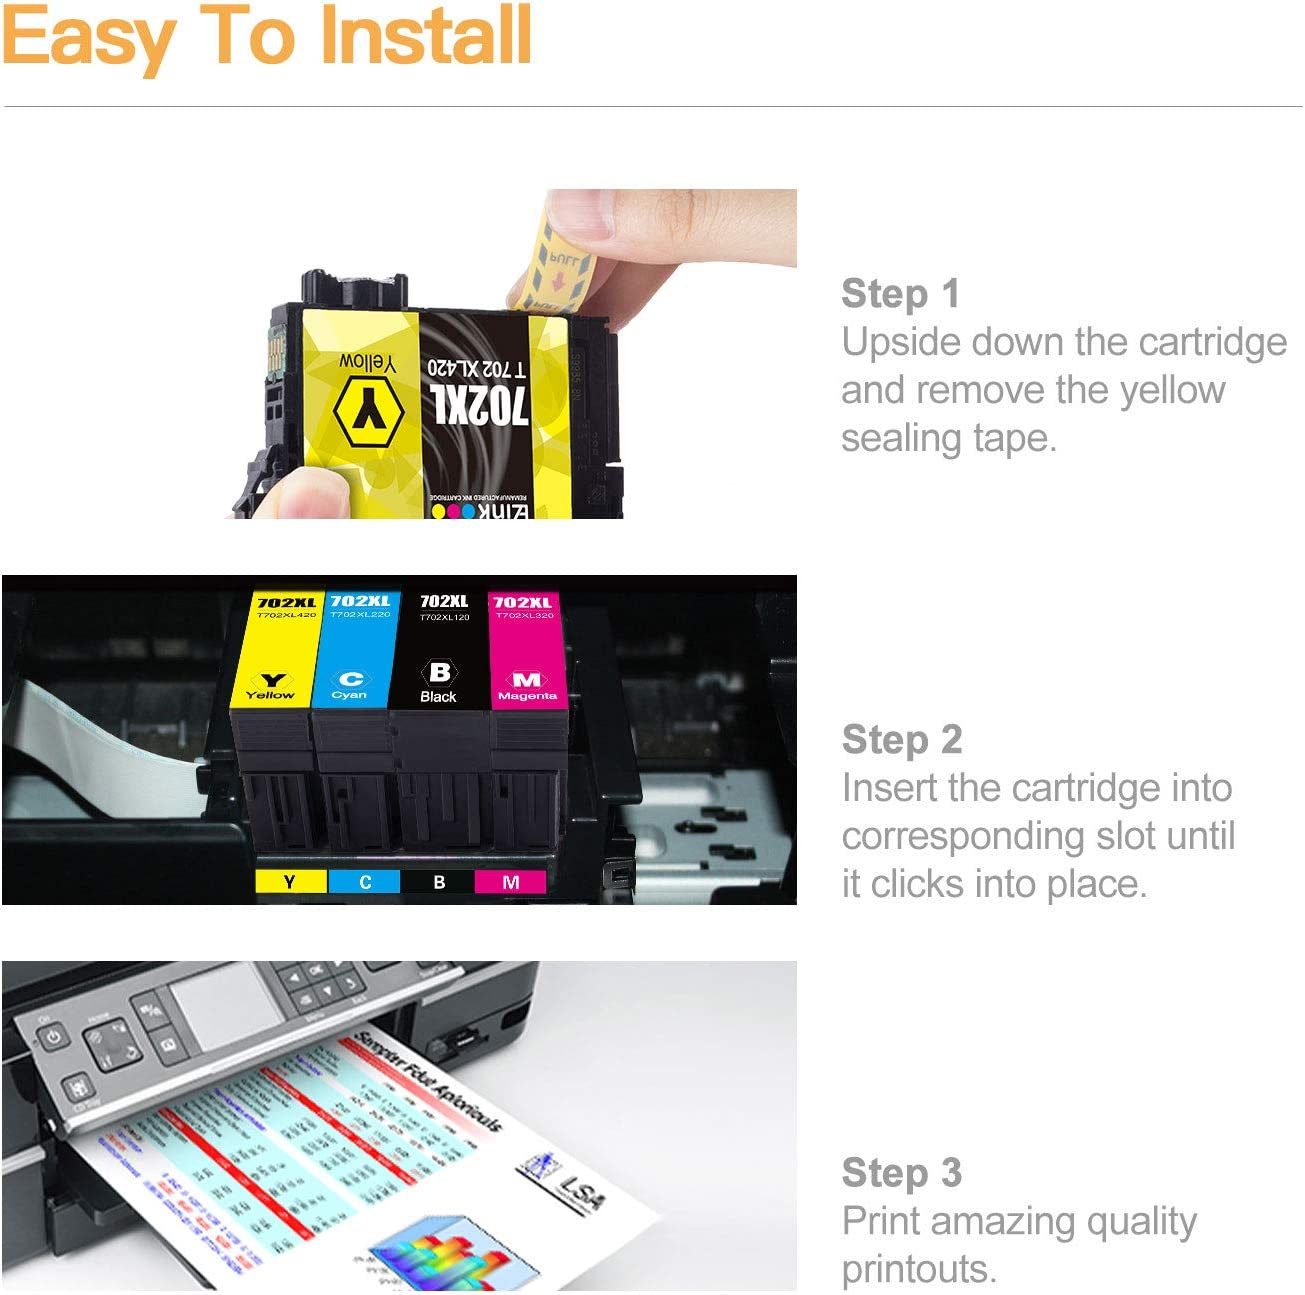 Remanufactured Ink Cartridge Replacement for Epson 702XL T702XL 702 T702 to use with Workforce Pro WF-3720 WF-3730 WF-3733 Printer E-Z Ink TM 1 Large Black, 1 Cyan, 1 Magenta, 1 Yellow, 4 Pack